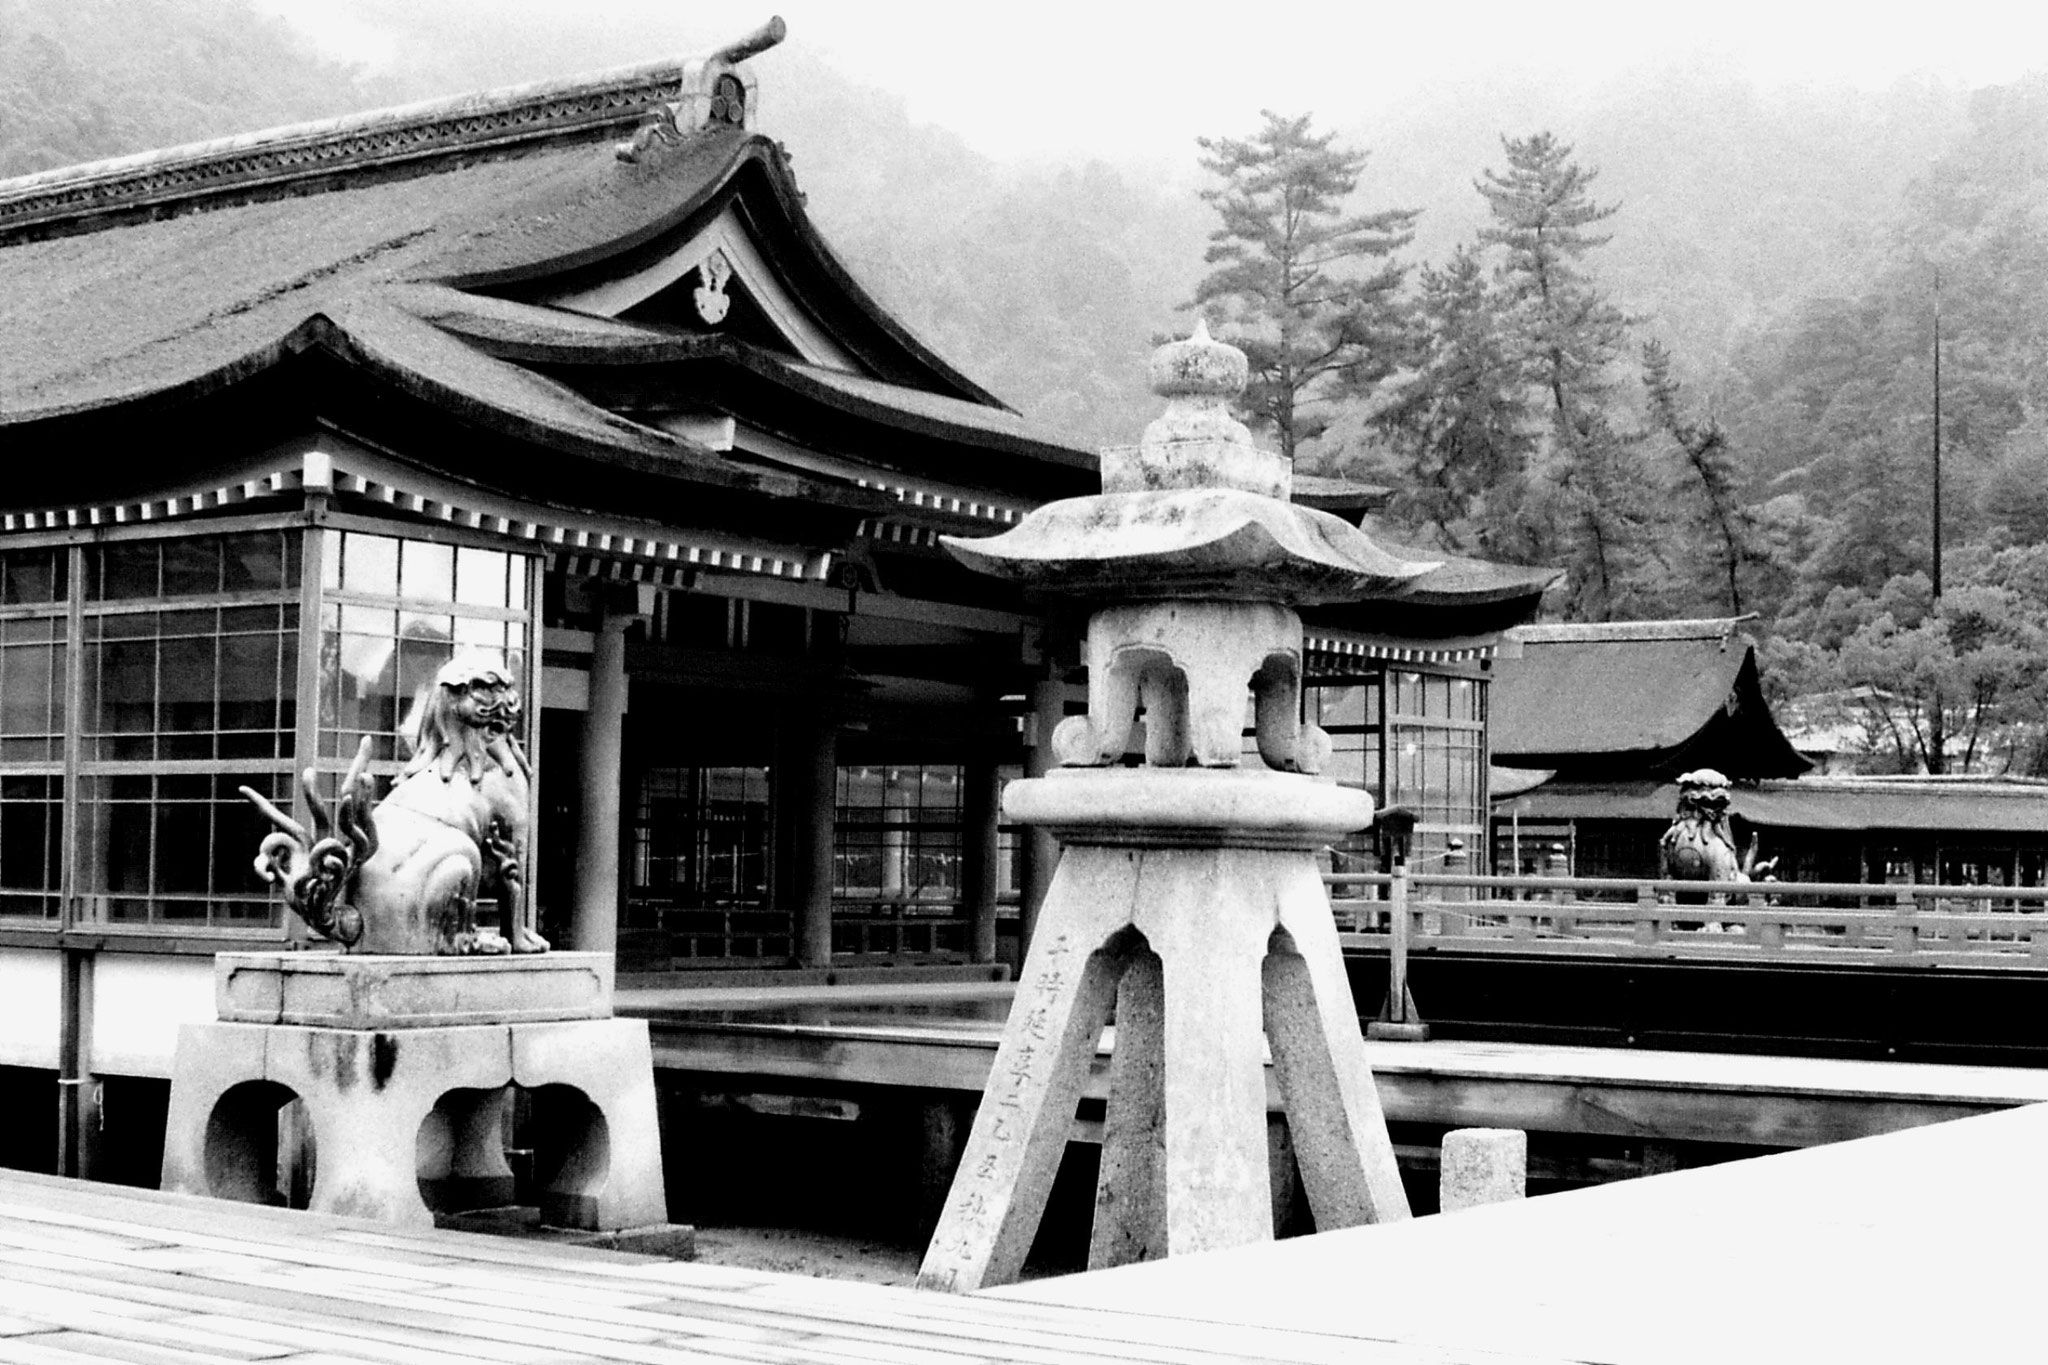 23/1/1989: 33: Miyajima Itsukushima Shrine